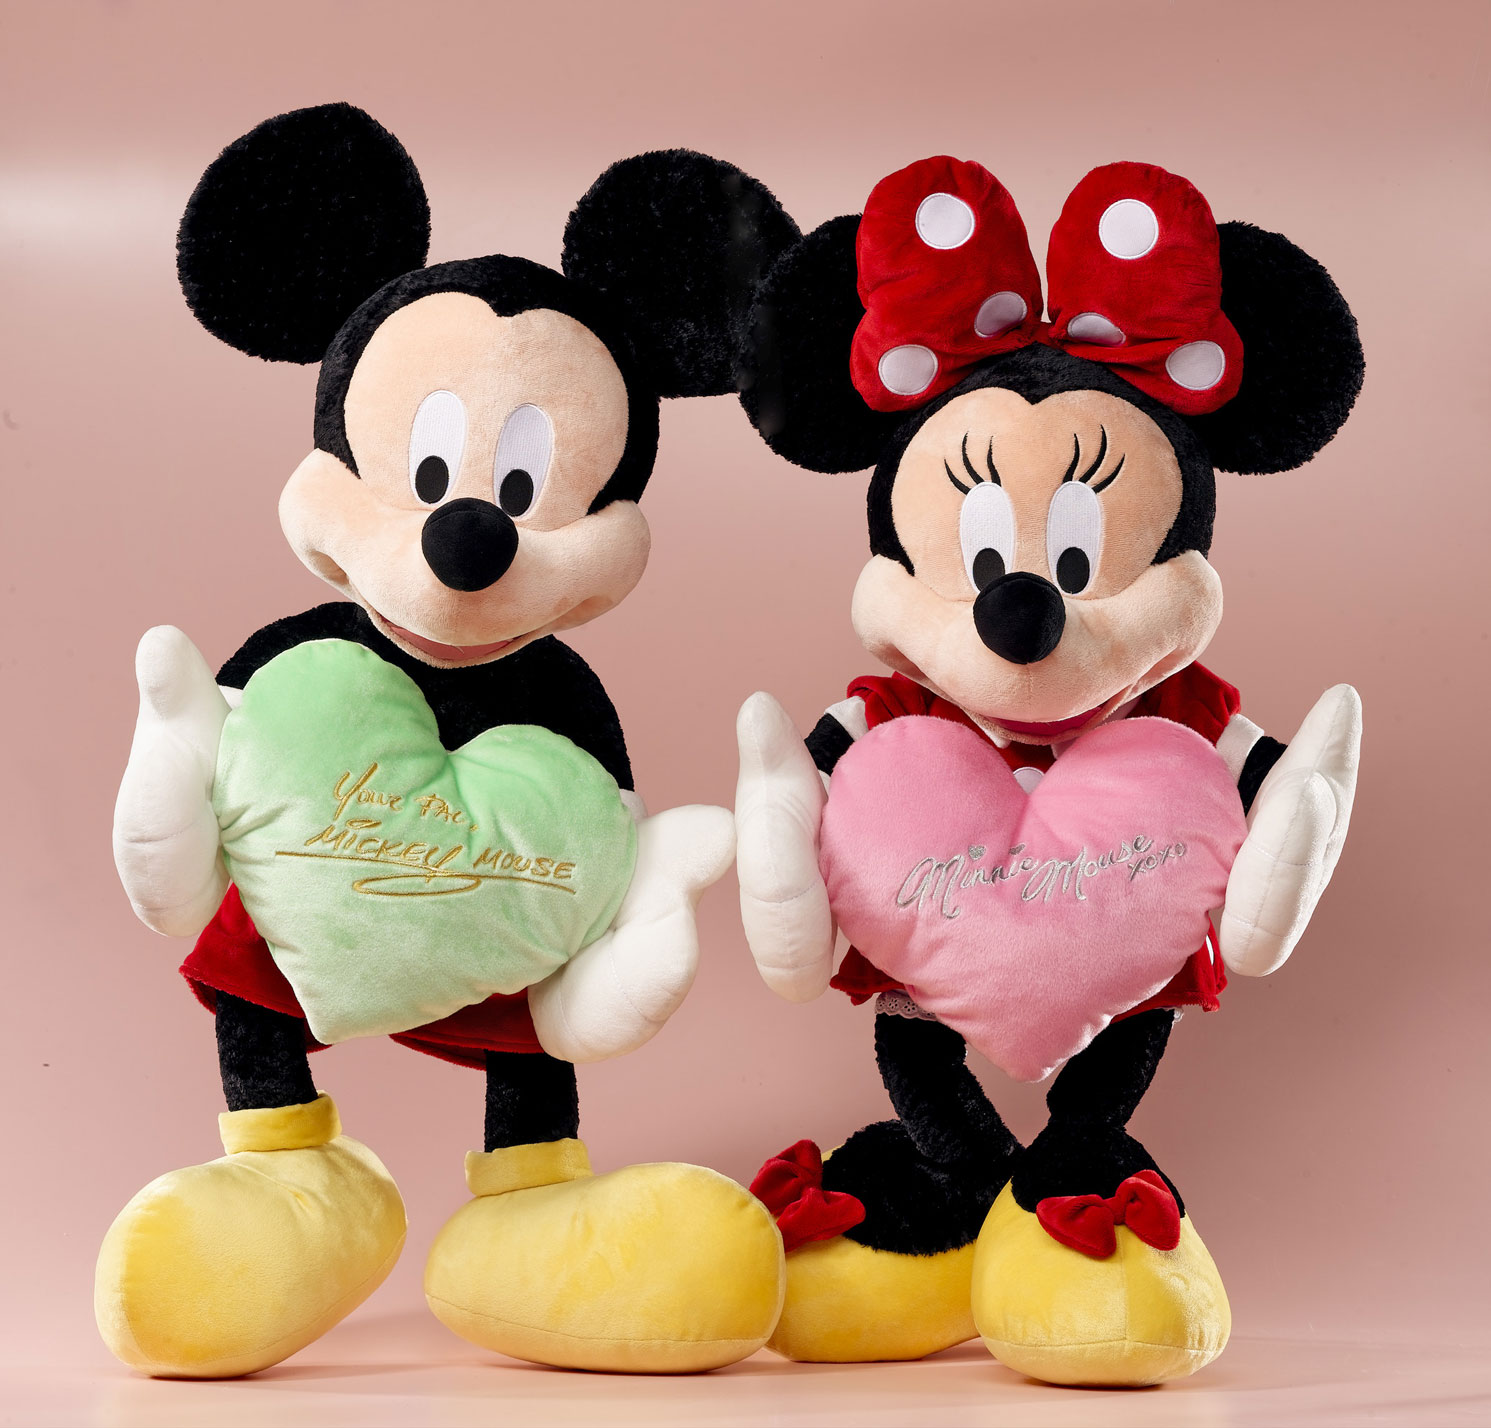 Free Mickey Mouse And Minnie Mouse Love Download Free